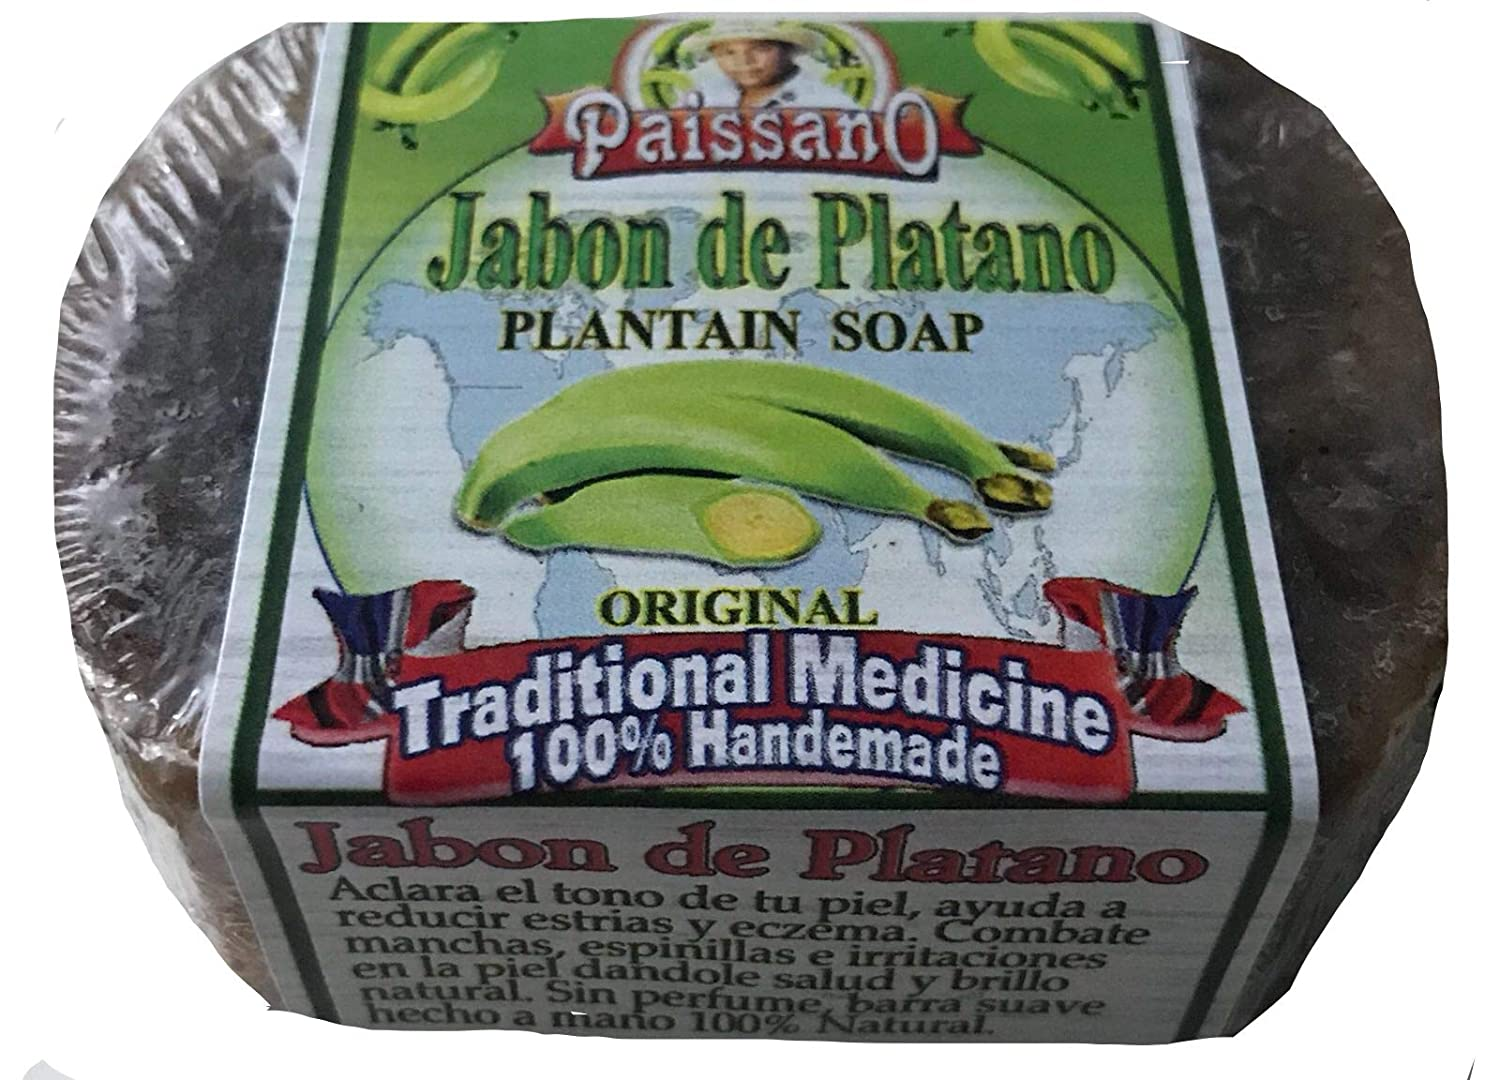 Amazon.com: Paissano Jabón de Plátano 12 Soap bars $14.99 (limited time): Arts, Crafts & Sewing